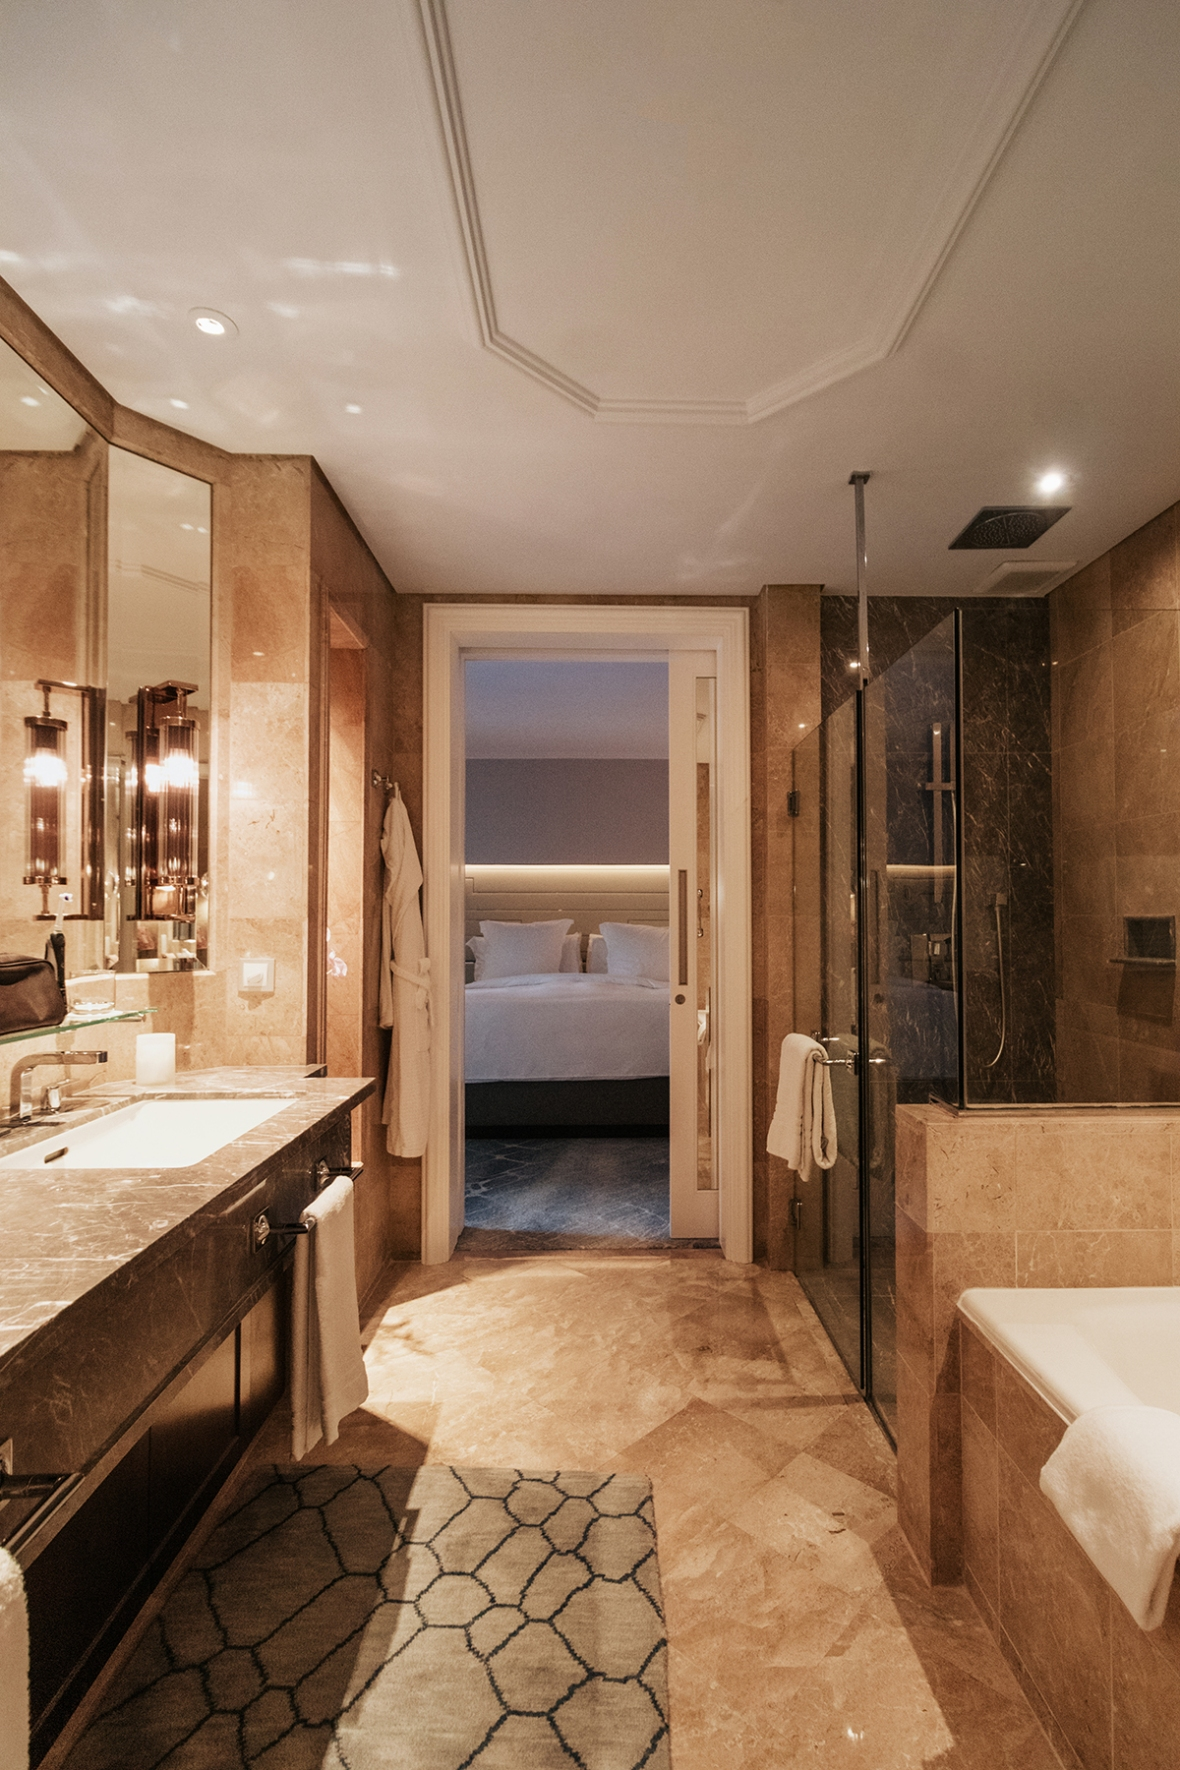 Review Four seasons Singapore after renovation rooms